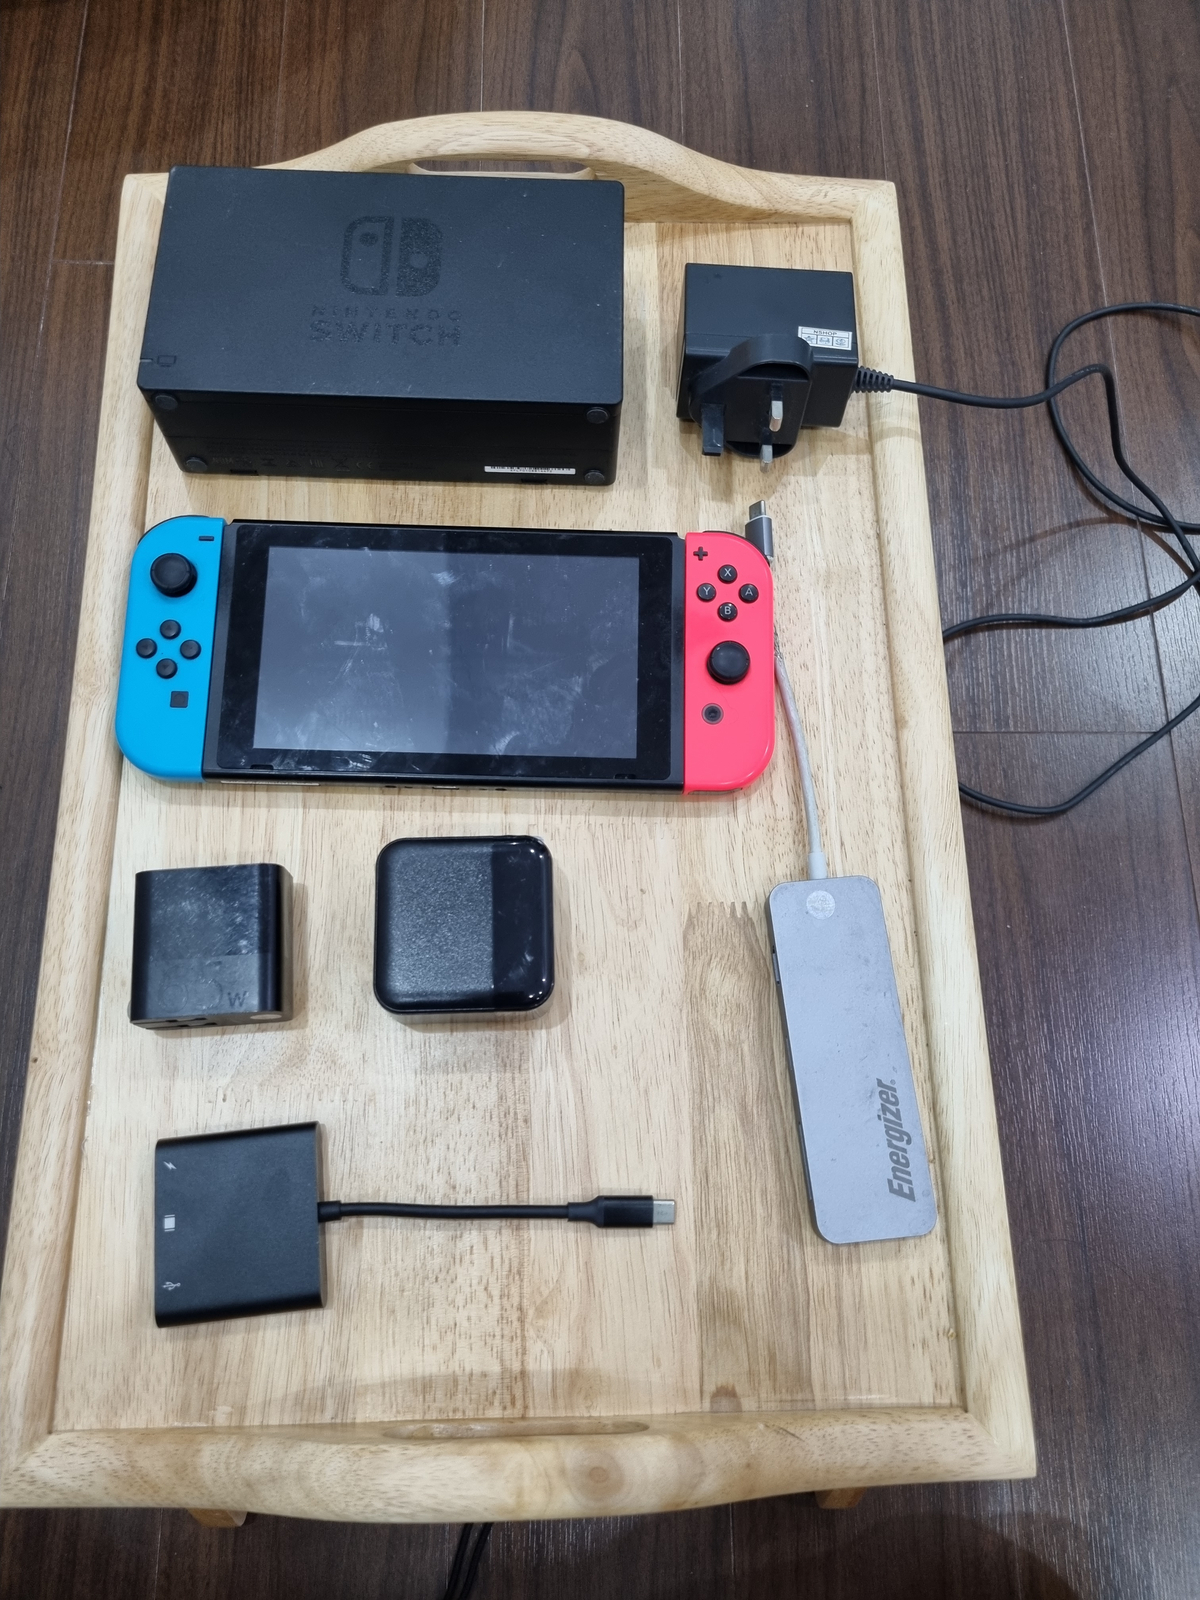 Review Dock du lịch 2 trong 1 cho Nintendo Switch